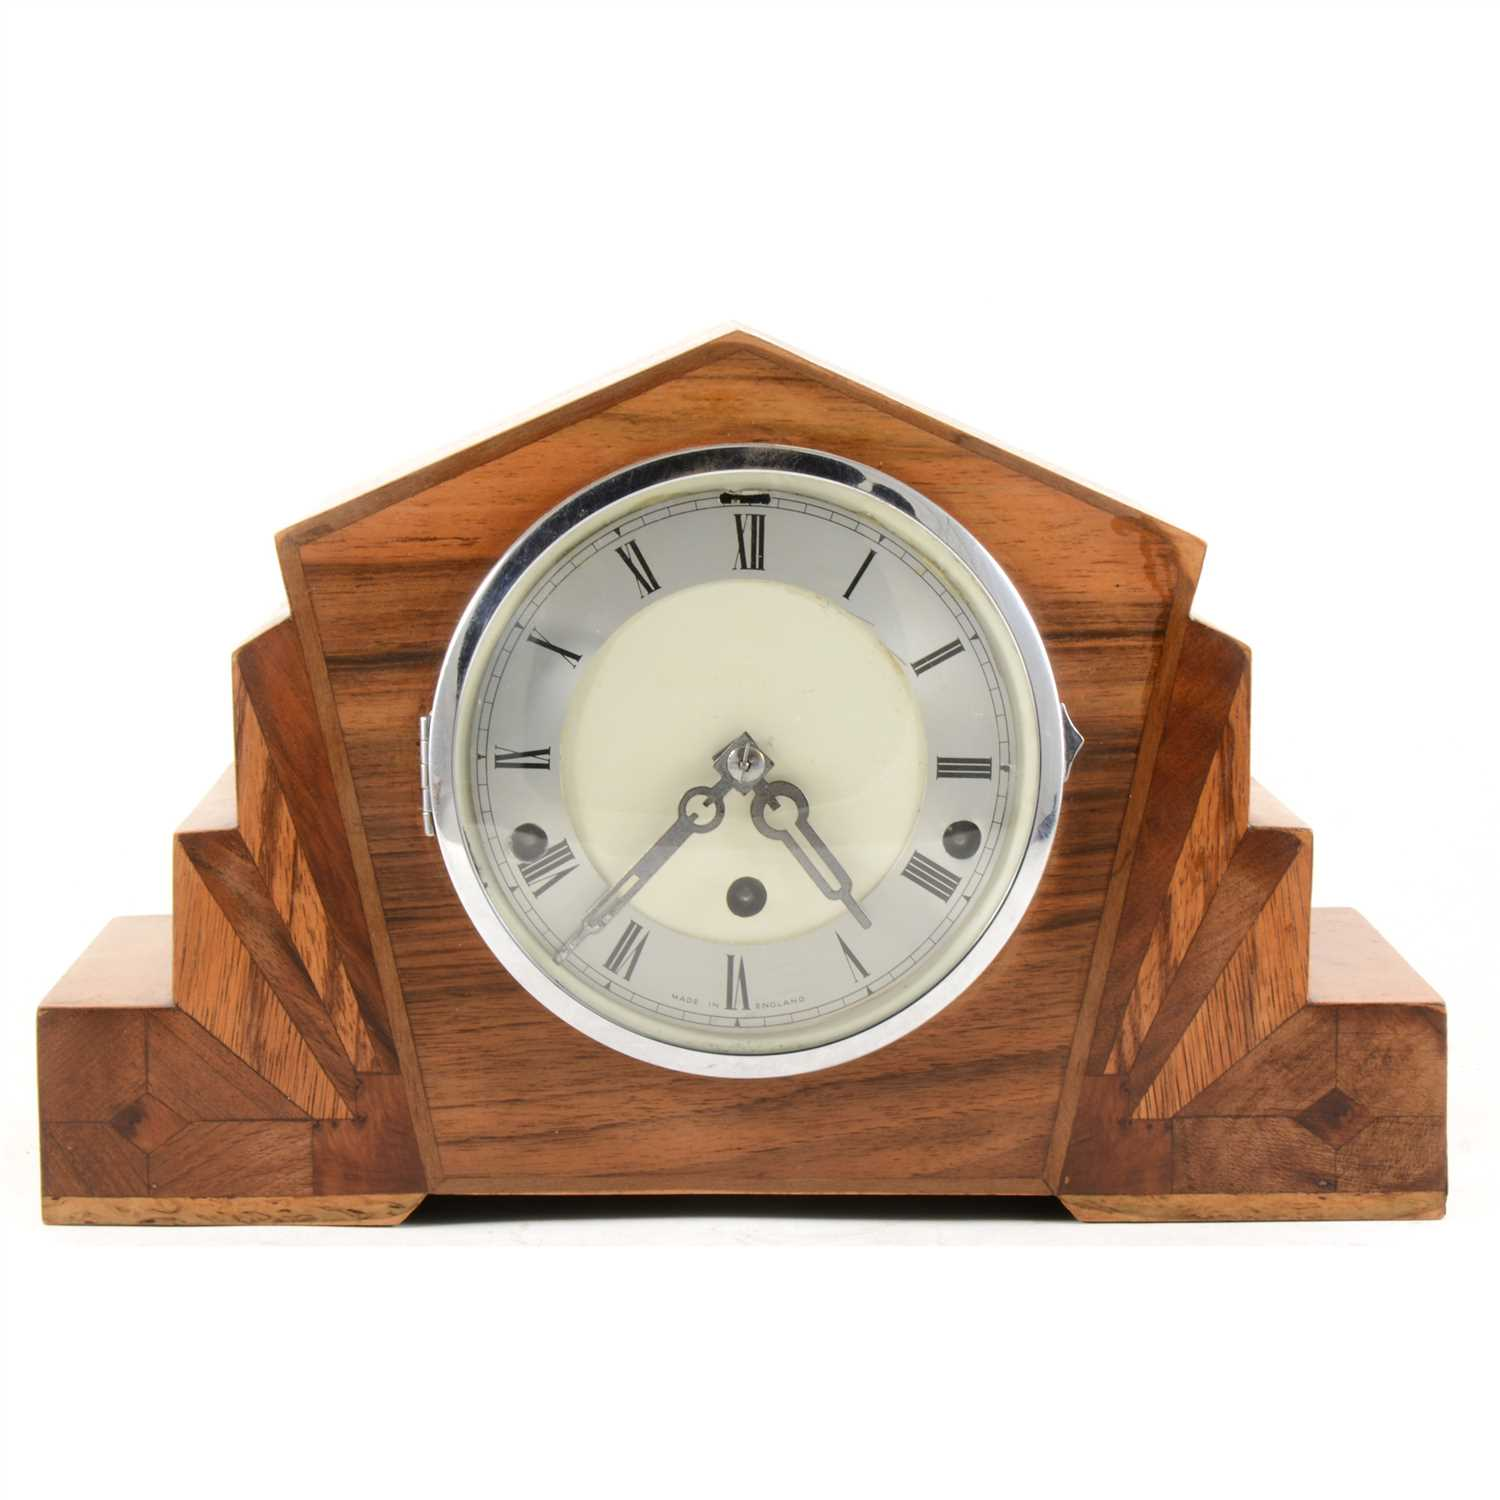 Lot 139 An Art Deco Style Mantel Clock And A Small